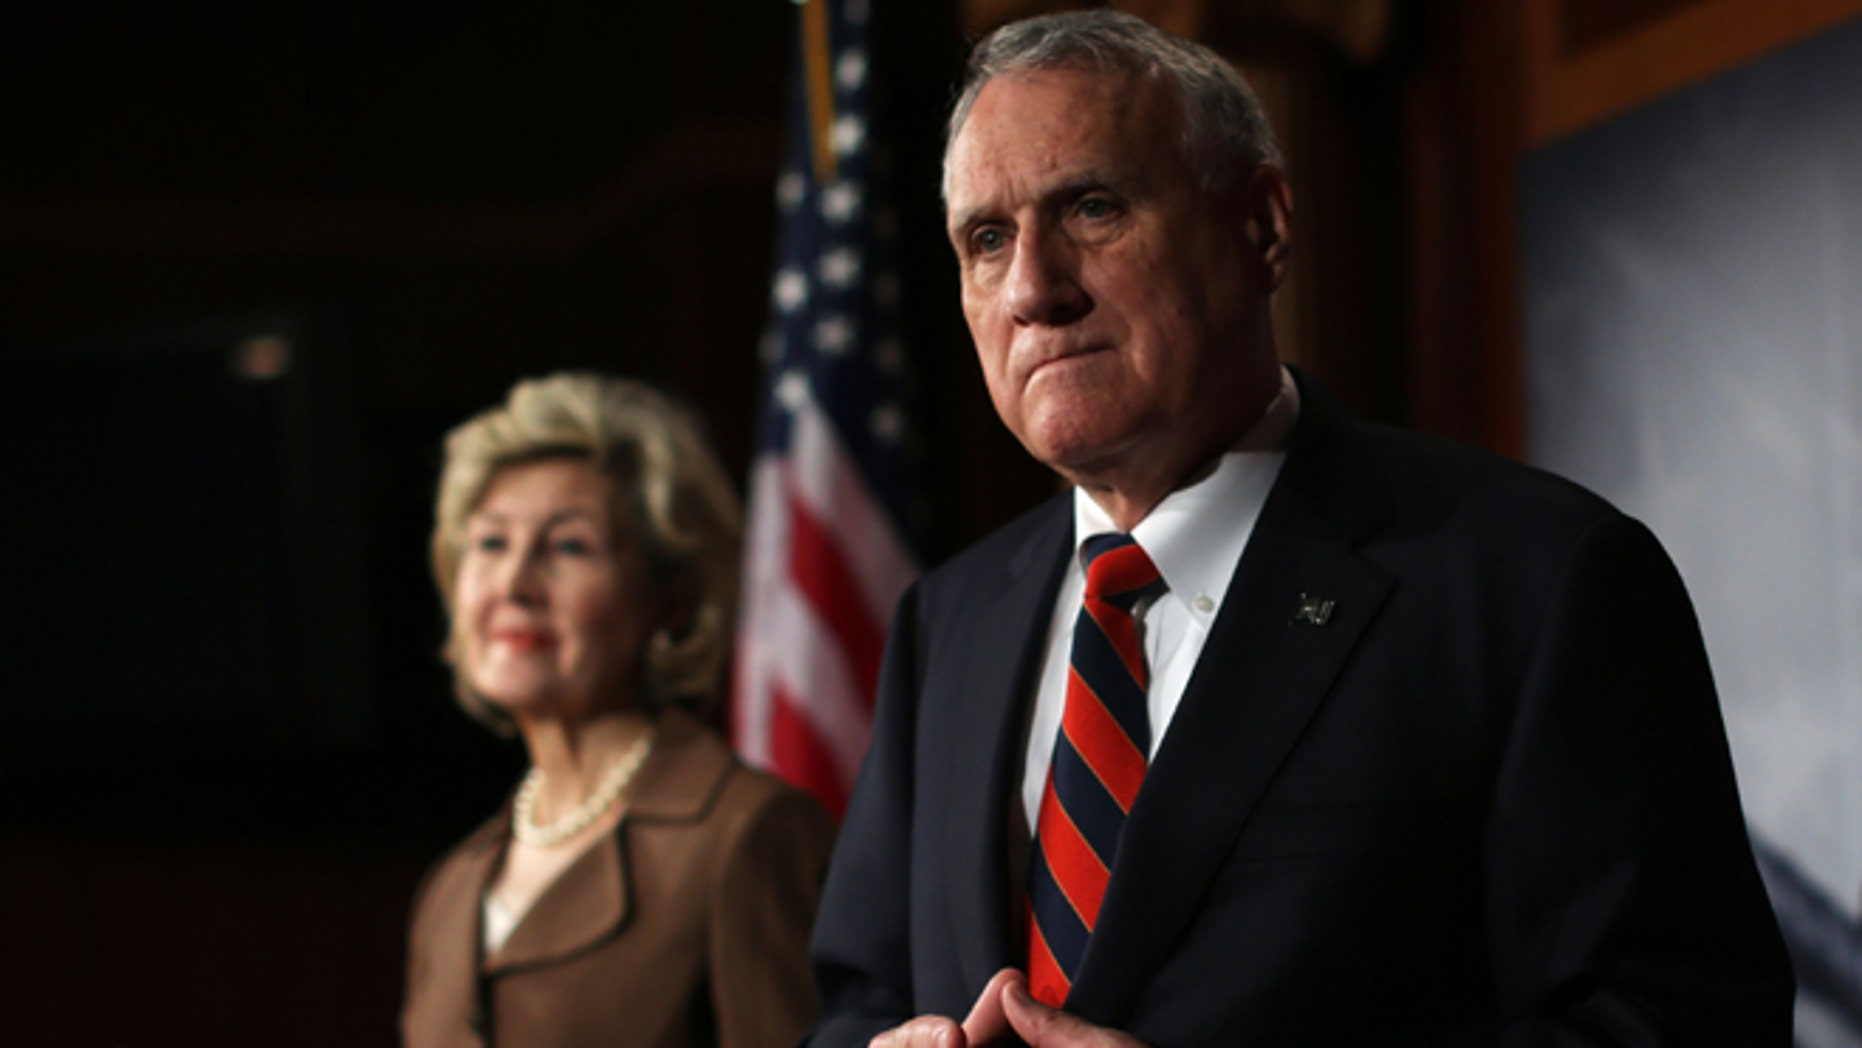 WASHINGTON, DC - NOVEMBER 27:  U.S Senator Kay Bailey Hutchison (R-TX) (L) and Senator Jon Kyl (R-AZ) (R) listen during a news conference November 27, 2012 on Capitol Hill in Washington, DC. Senator Hutchison and Kyl held a news conference to discuss immigration reform.  (Photo by Alex Wong/Getty Images)